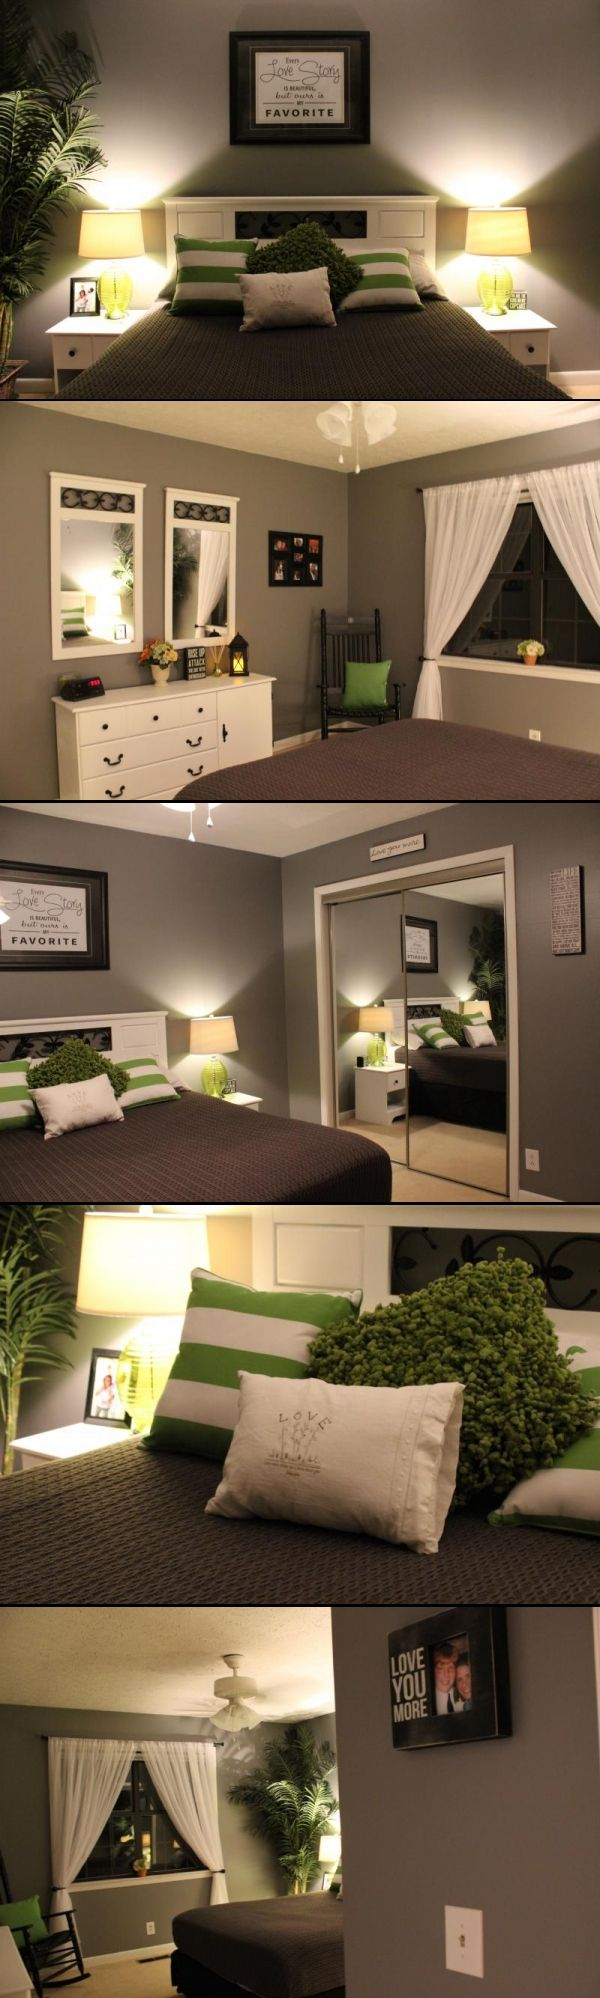 Gray and Green Bedroom. i like the color scheme